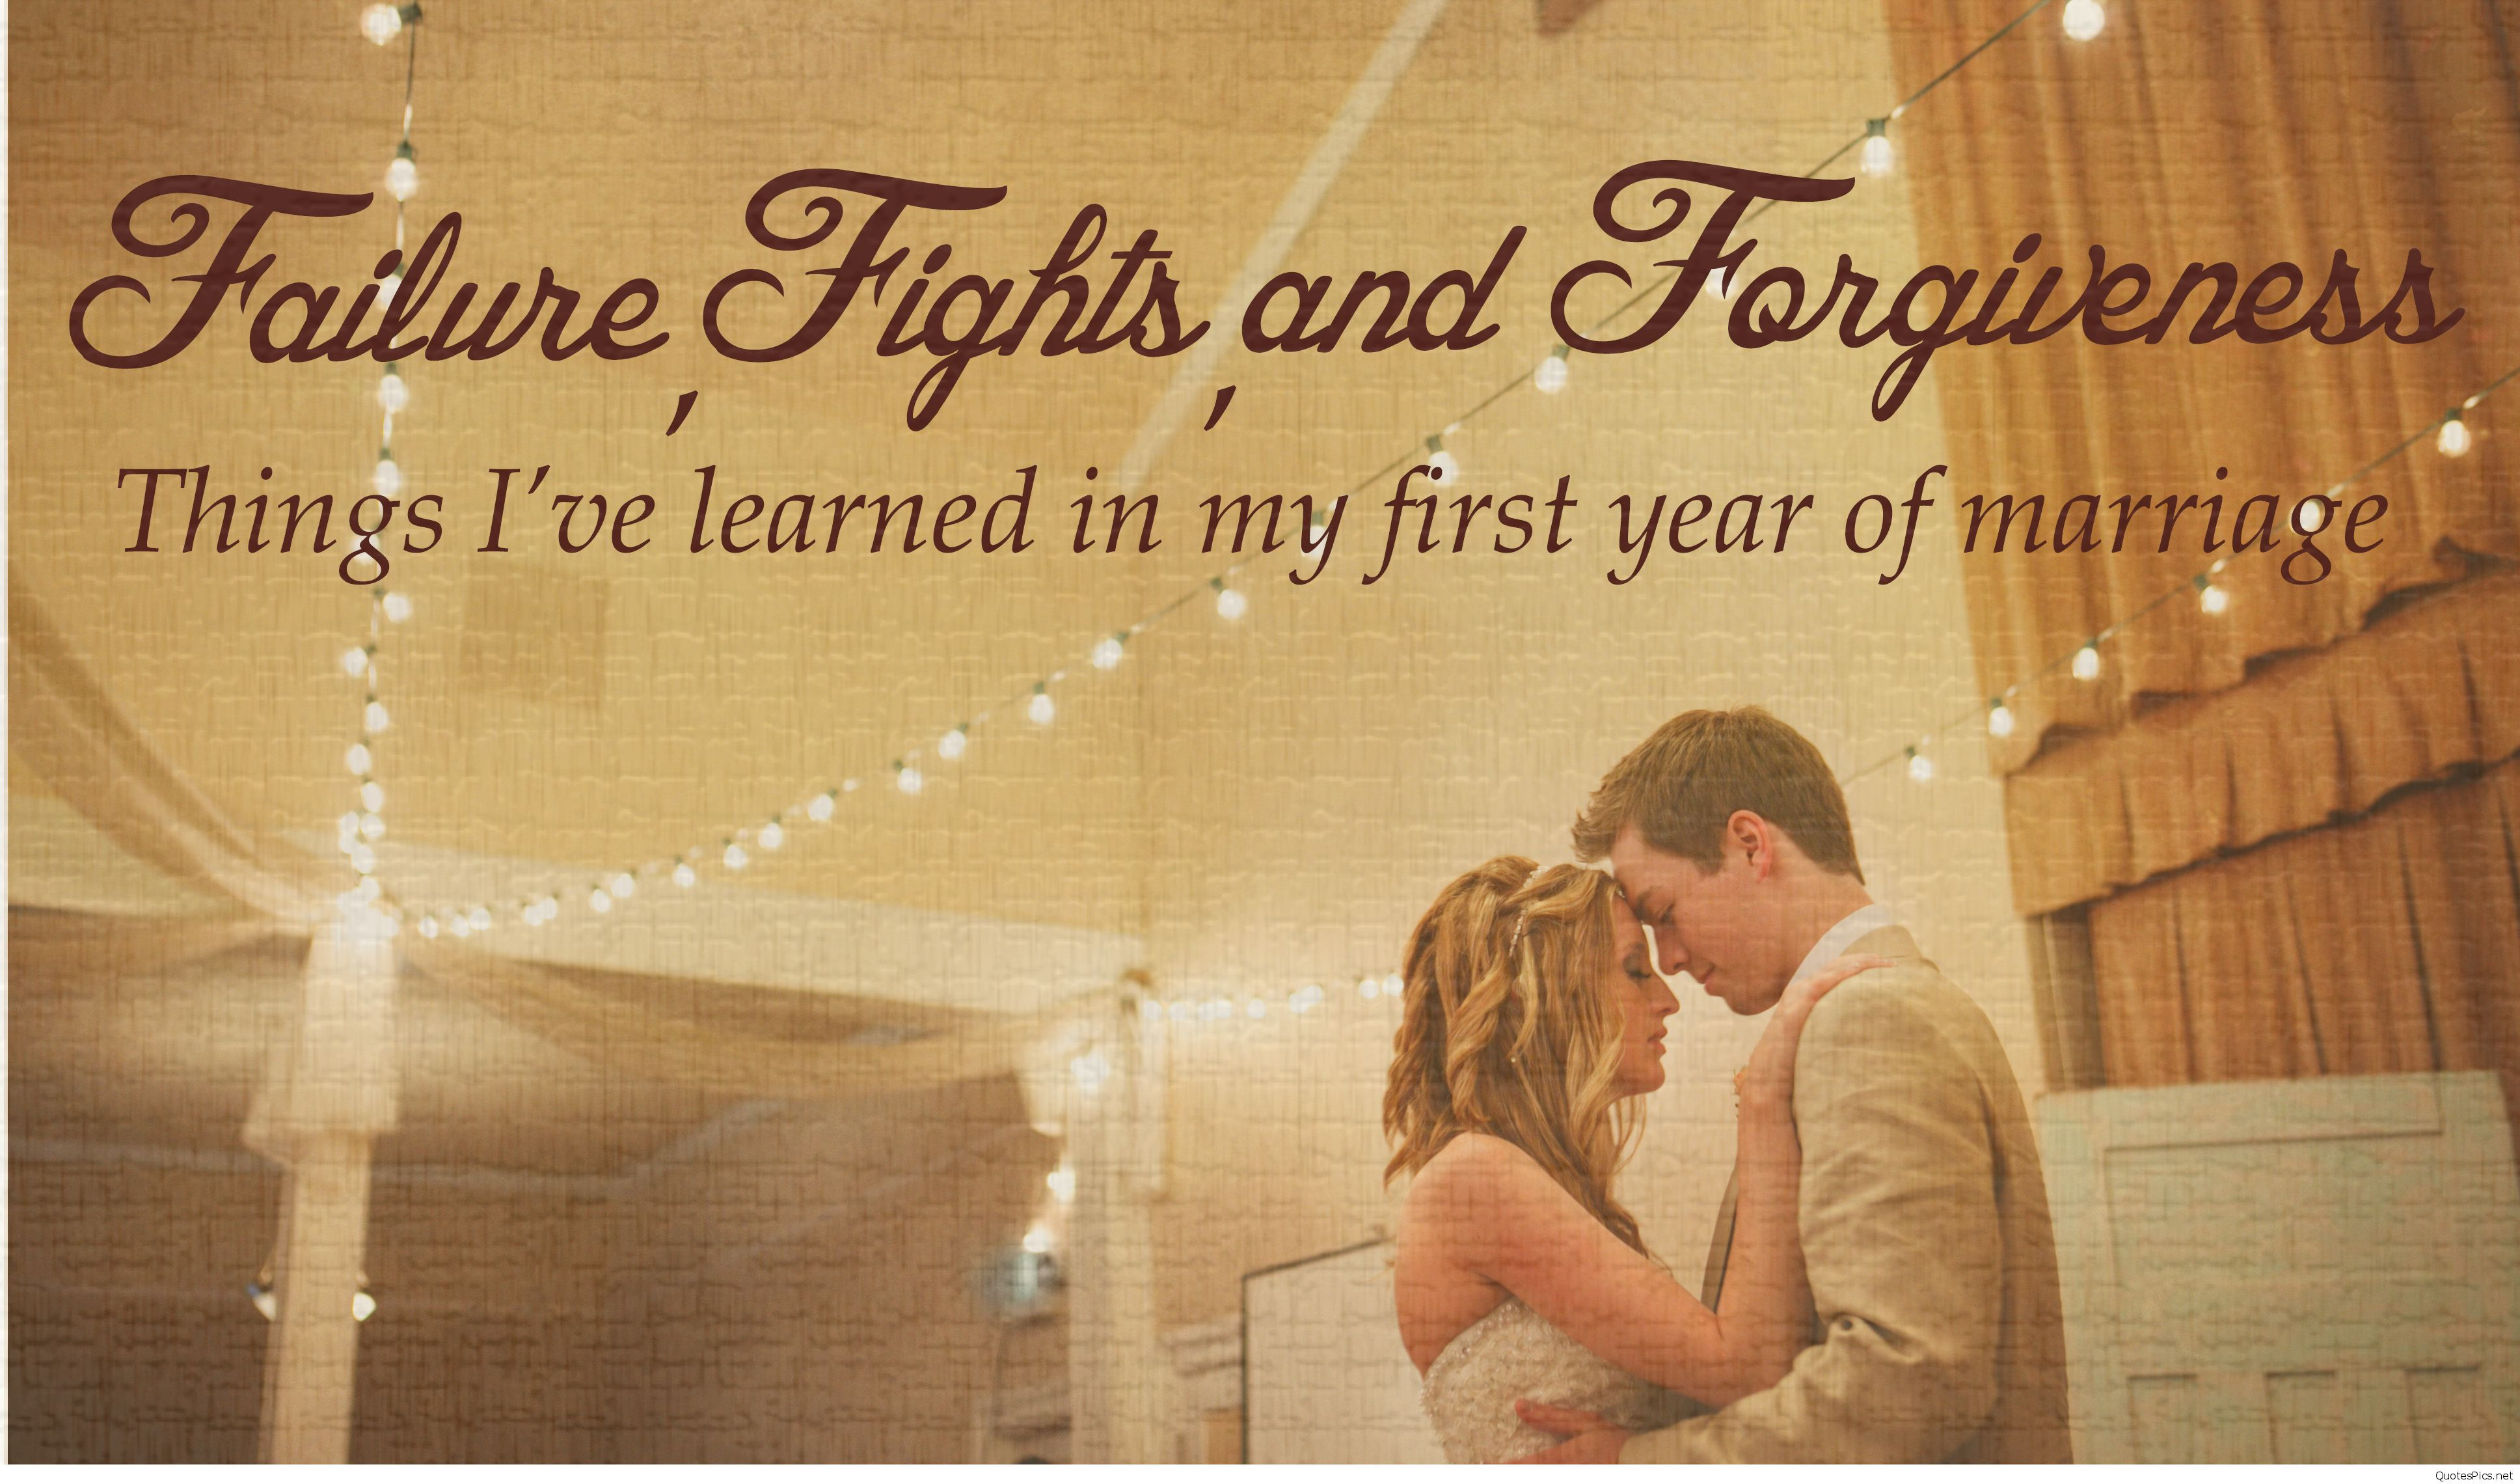 First Year Of Marriage Quotes  Happy marriage anniversary cards sayings quotes 2017 images